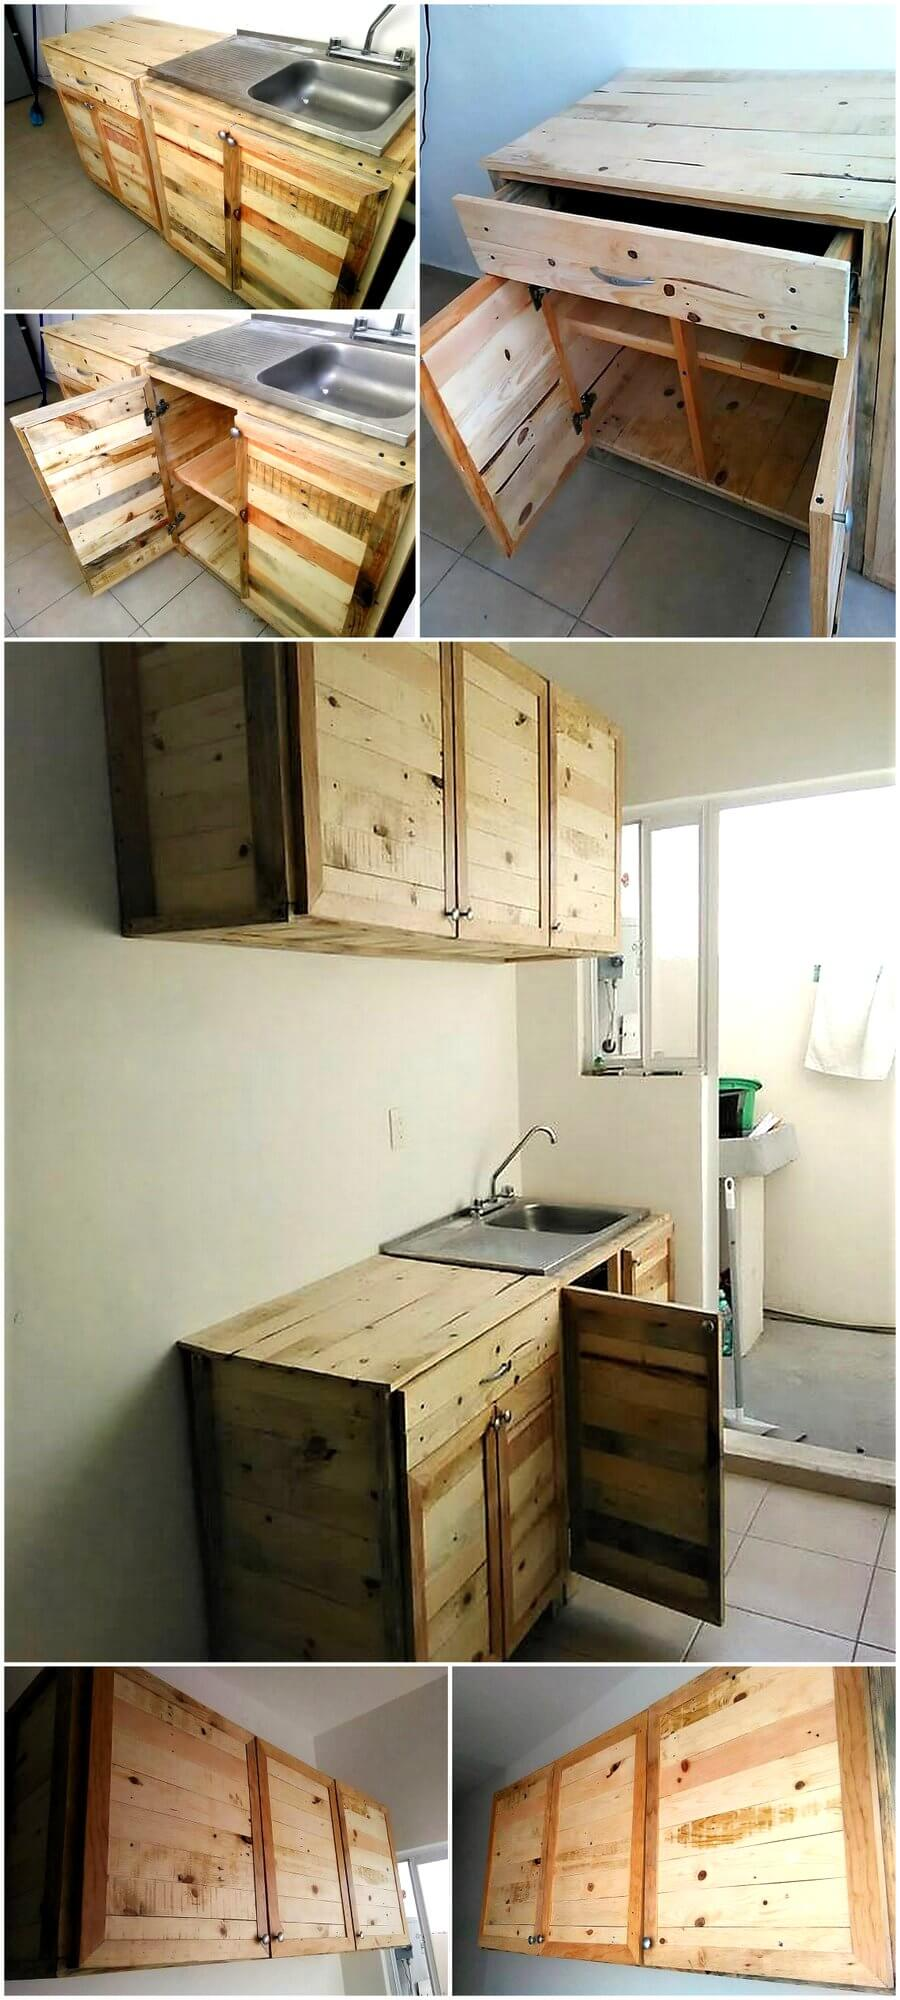 Wood Pallet Recycled Kitchen Cabinets – Pallet Ideas